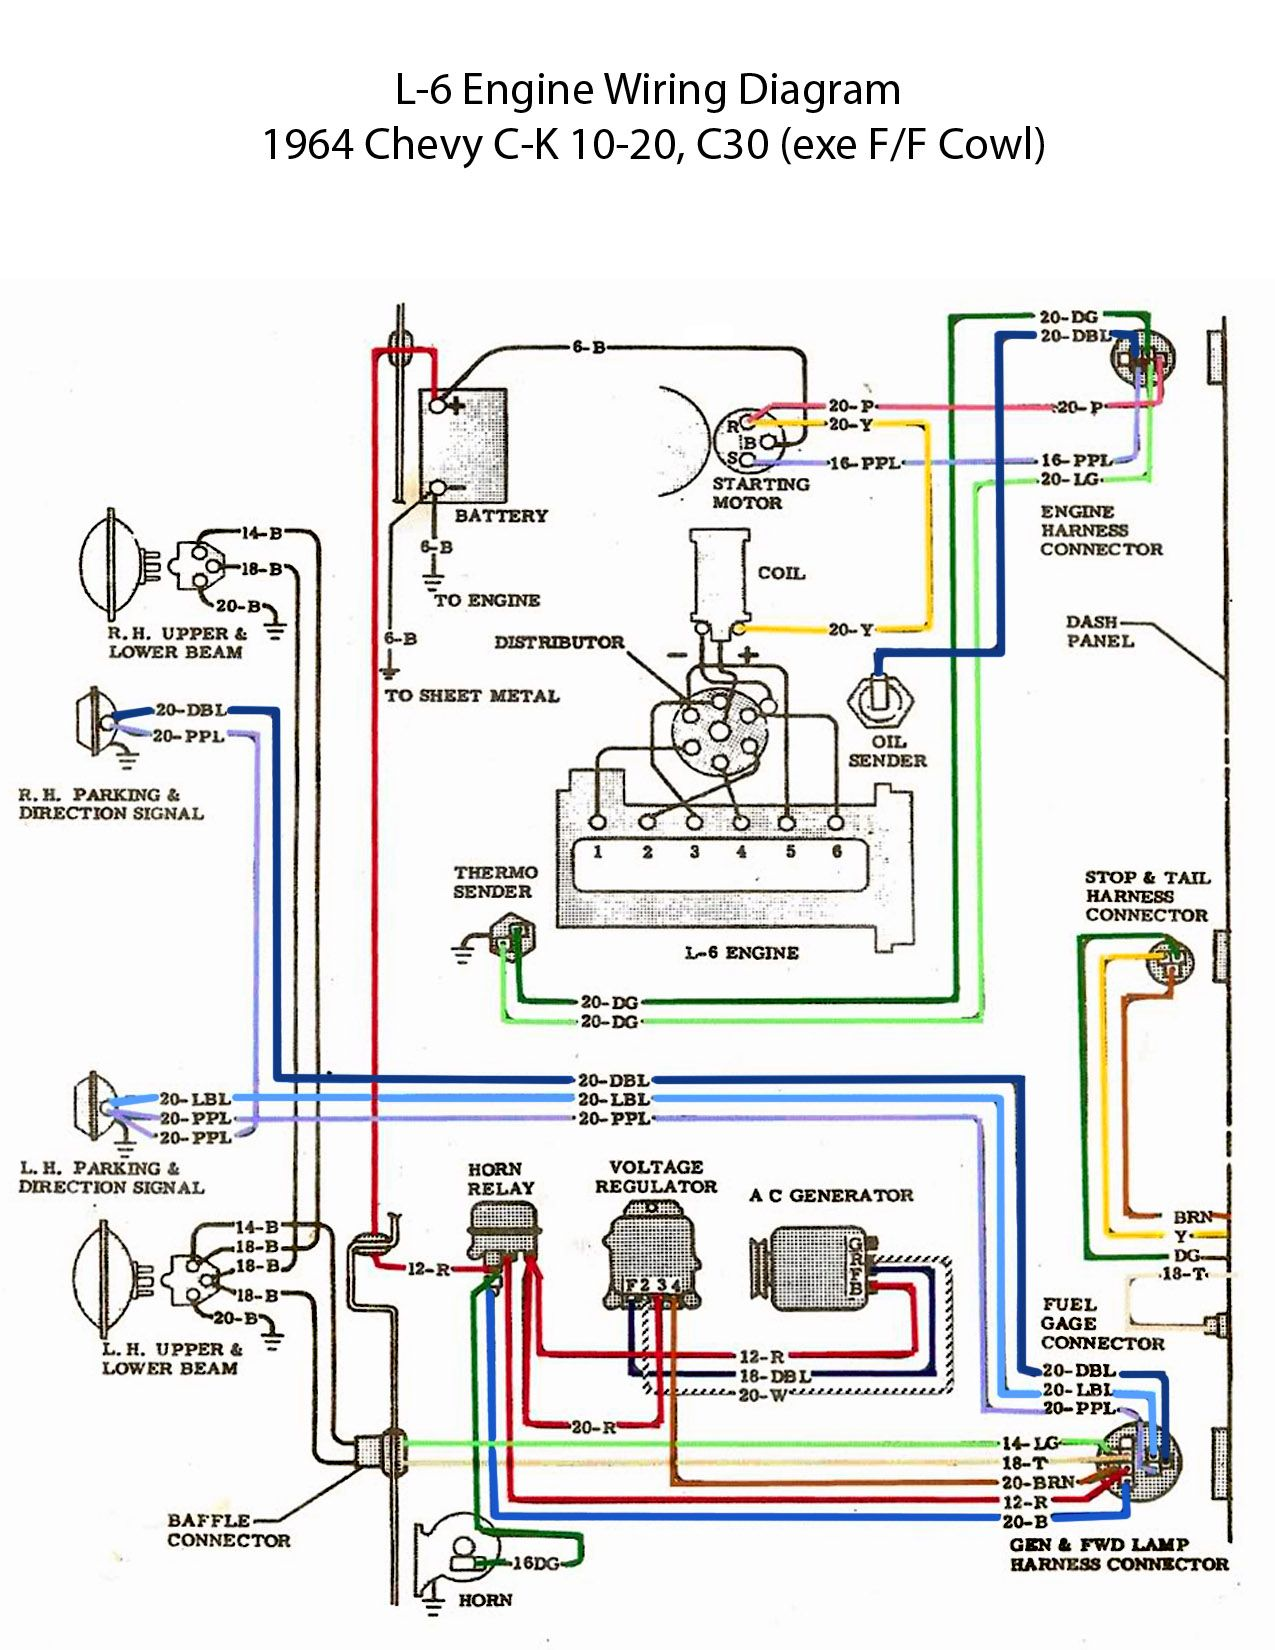 electric l 6 engine wiring diagram 60s chevy c10 wiring 1954 chevy truck horn diagram [ 1275 x 1650 Pixel ]